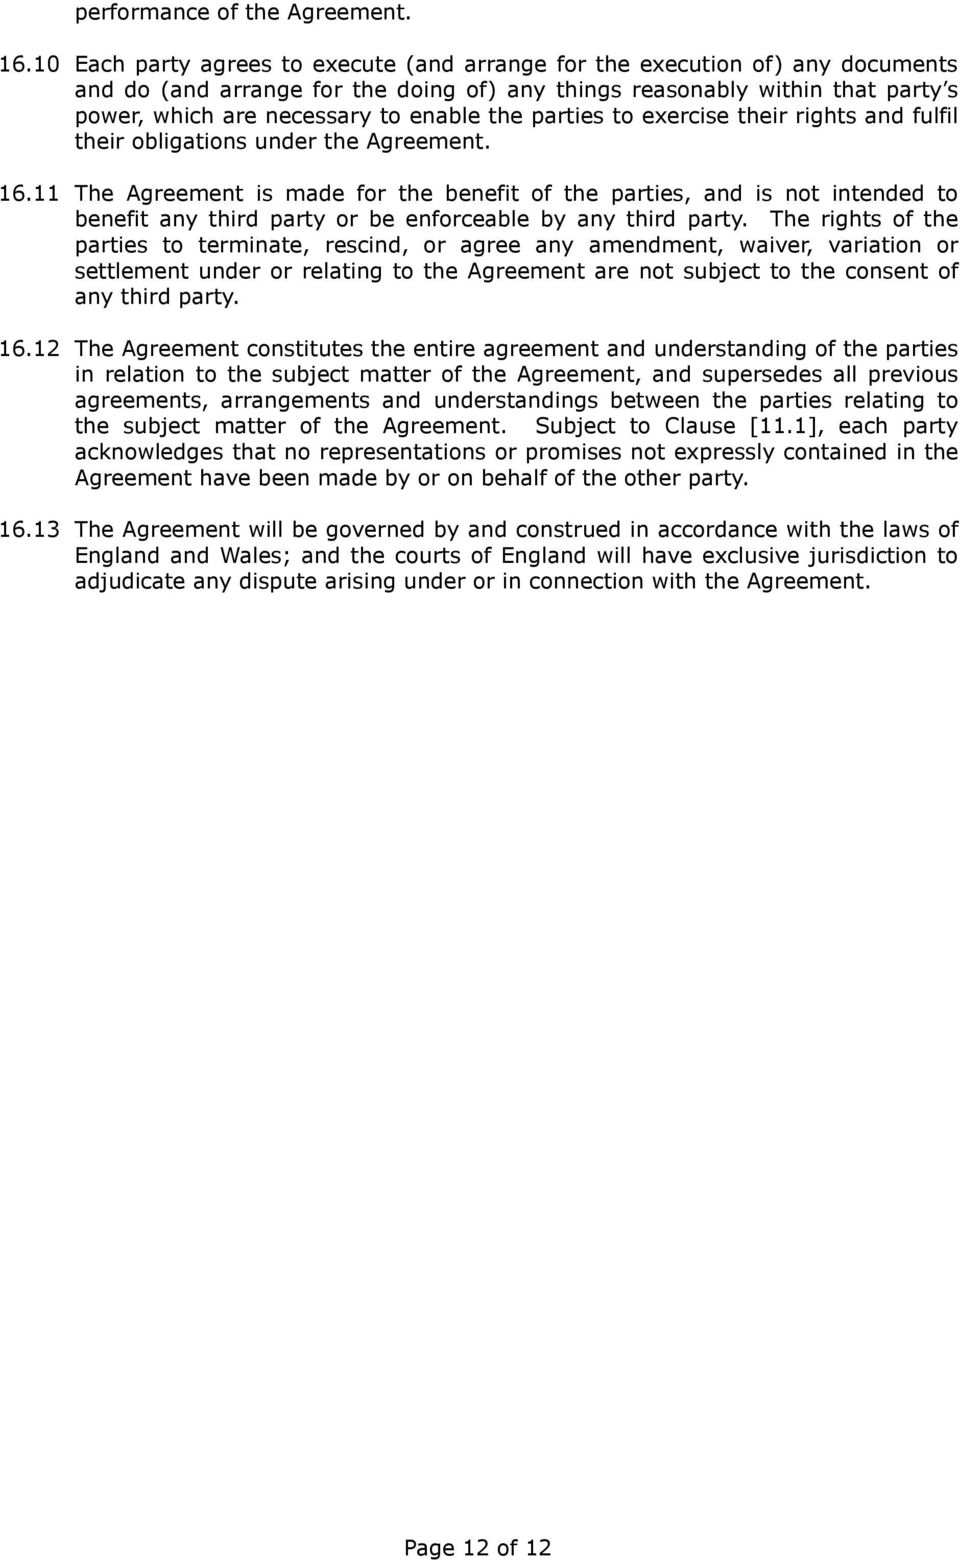 the parties to exercise their rights and fulfil their obligations under the Agreement. 16.